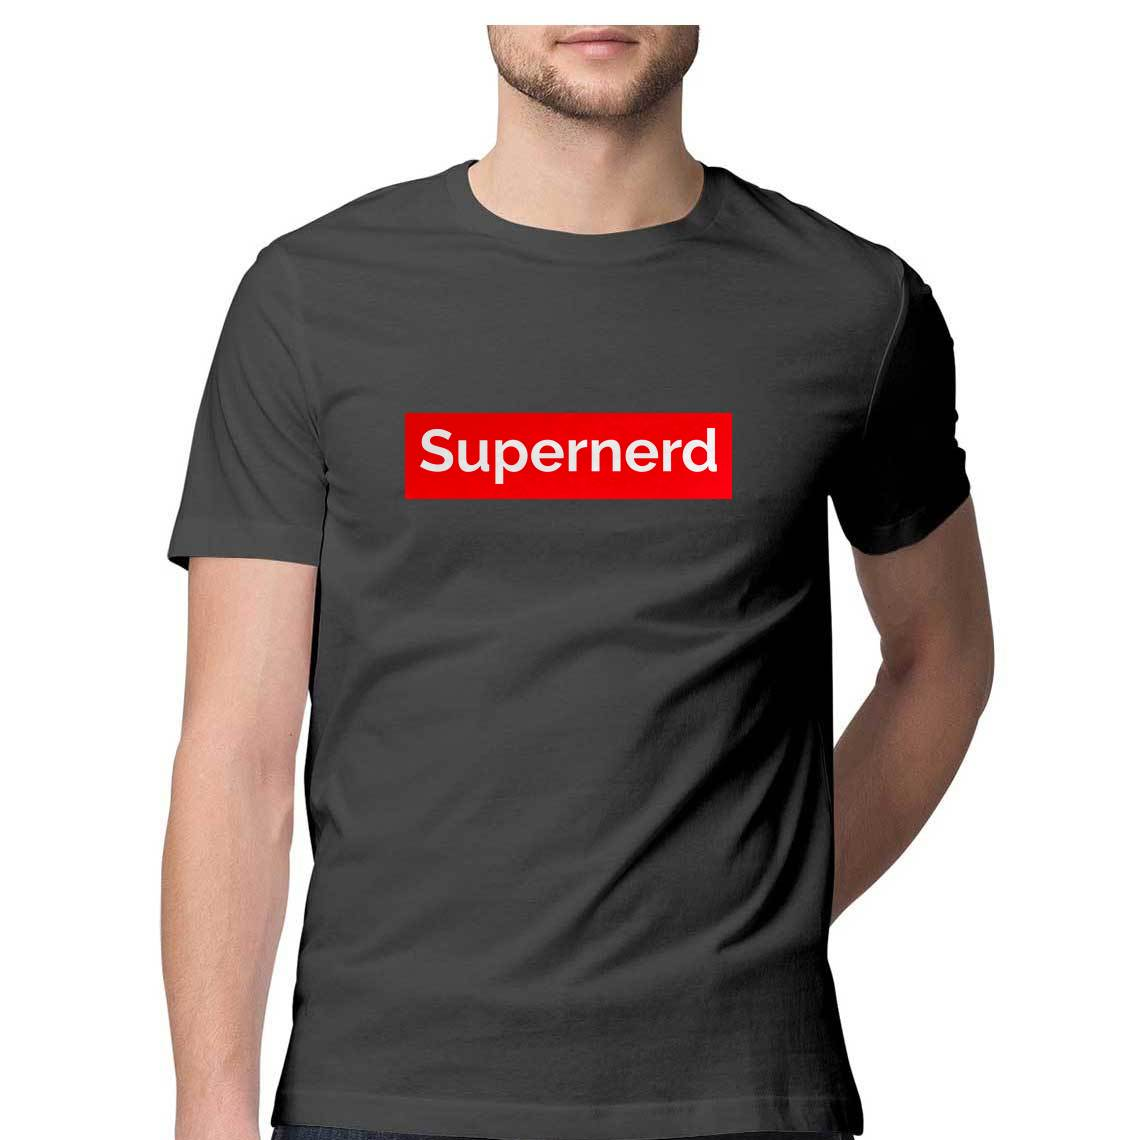 Supernerd - T-shirt